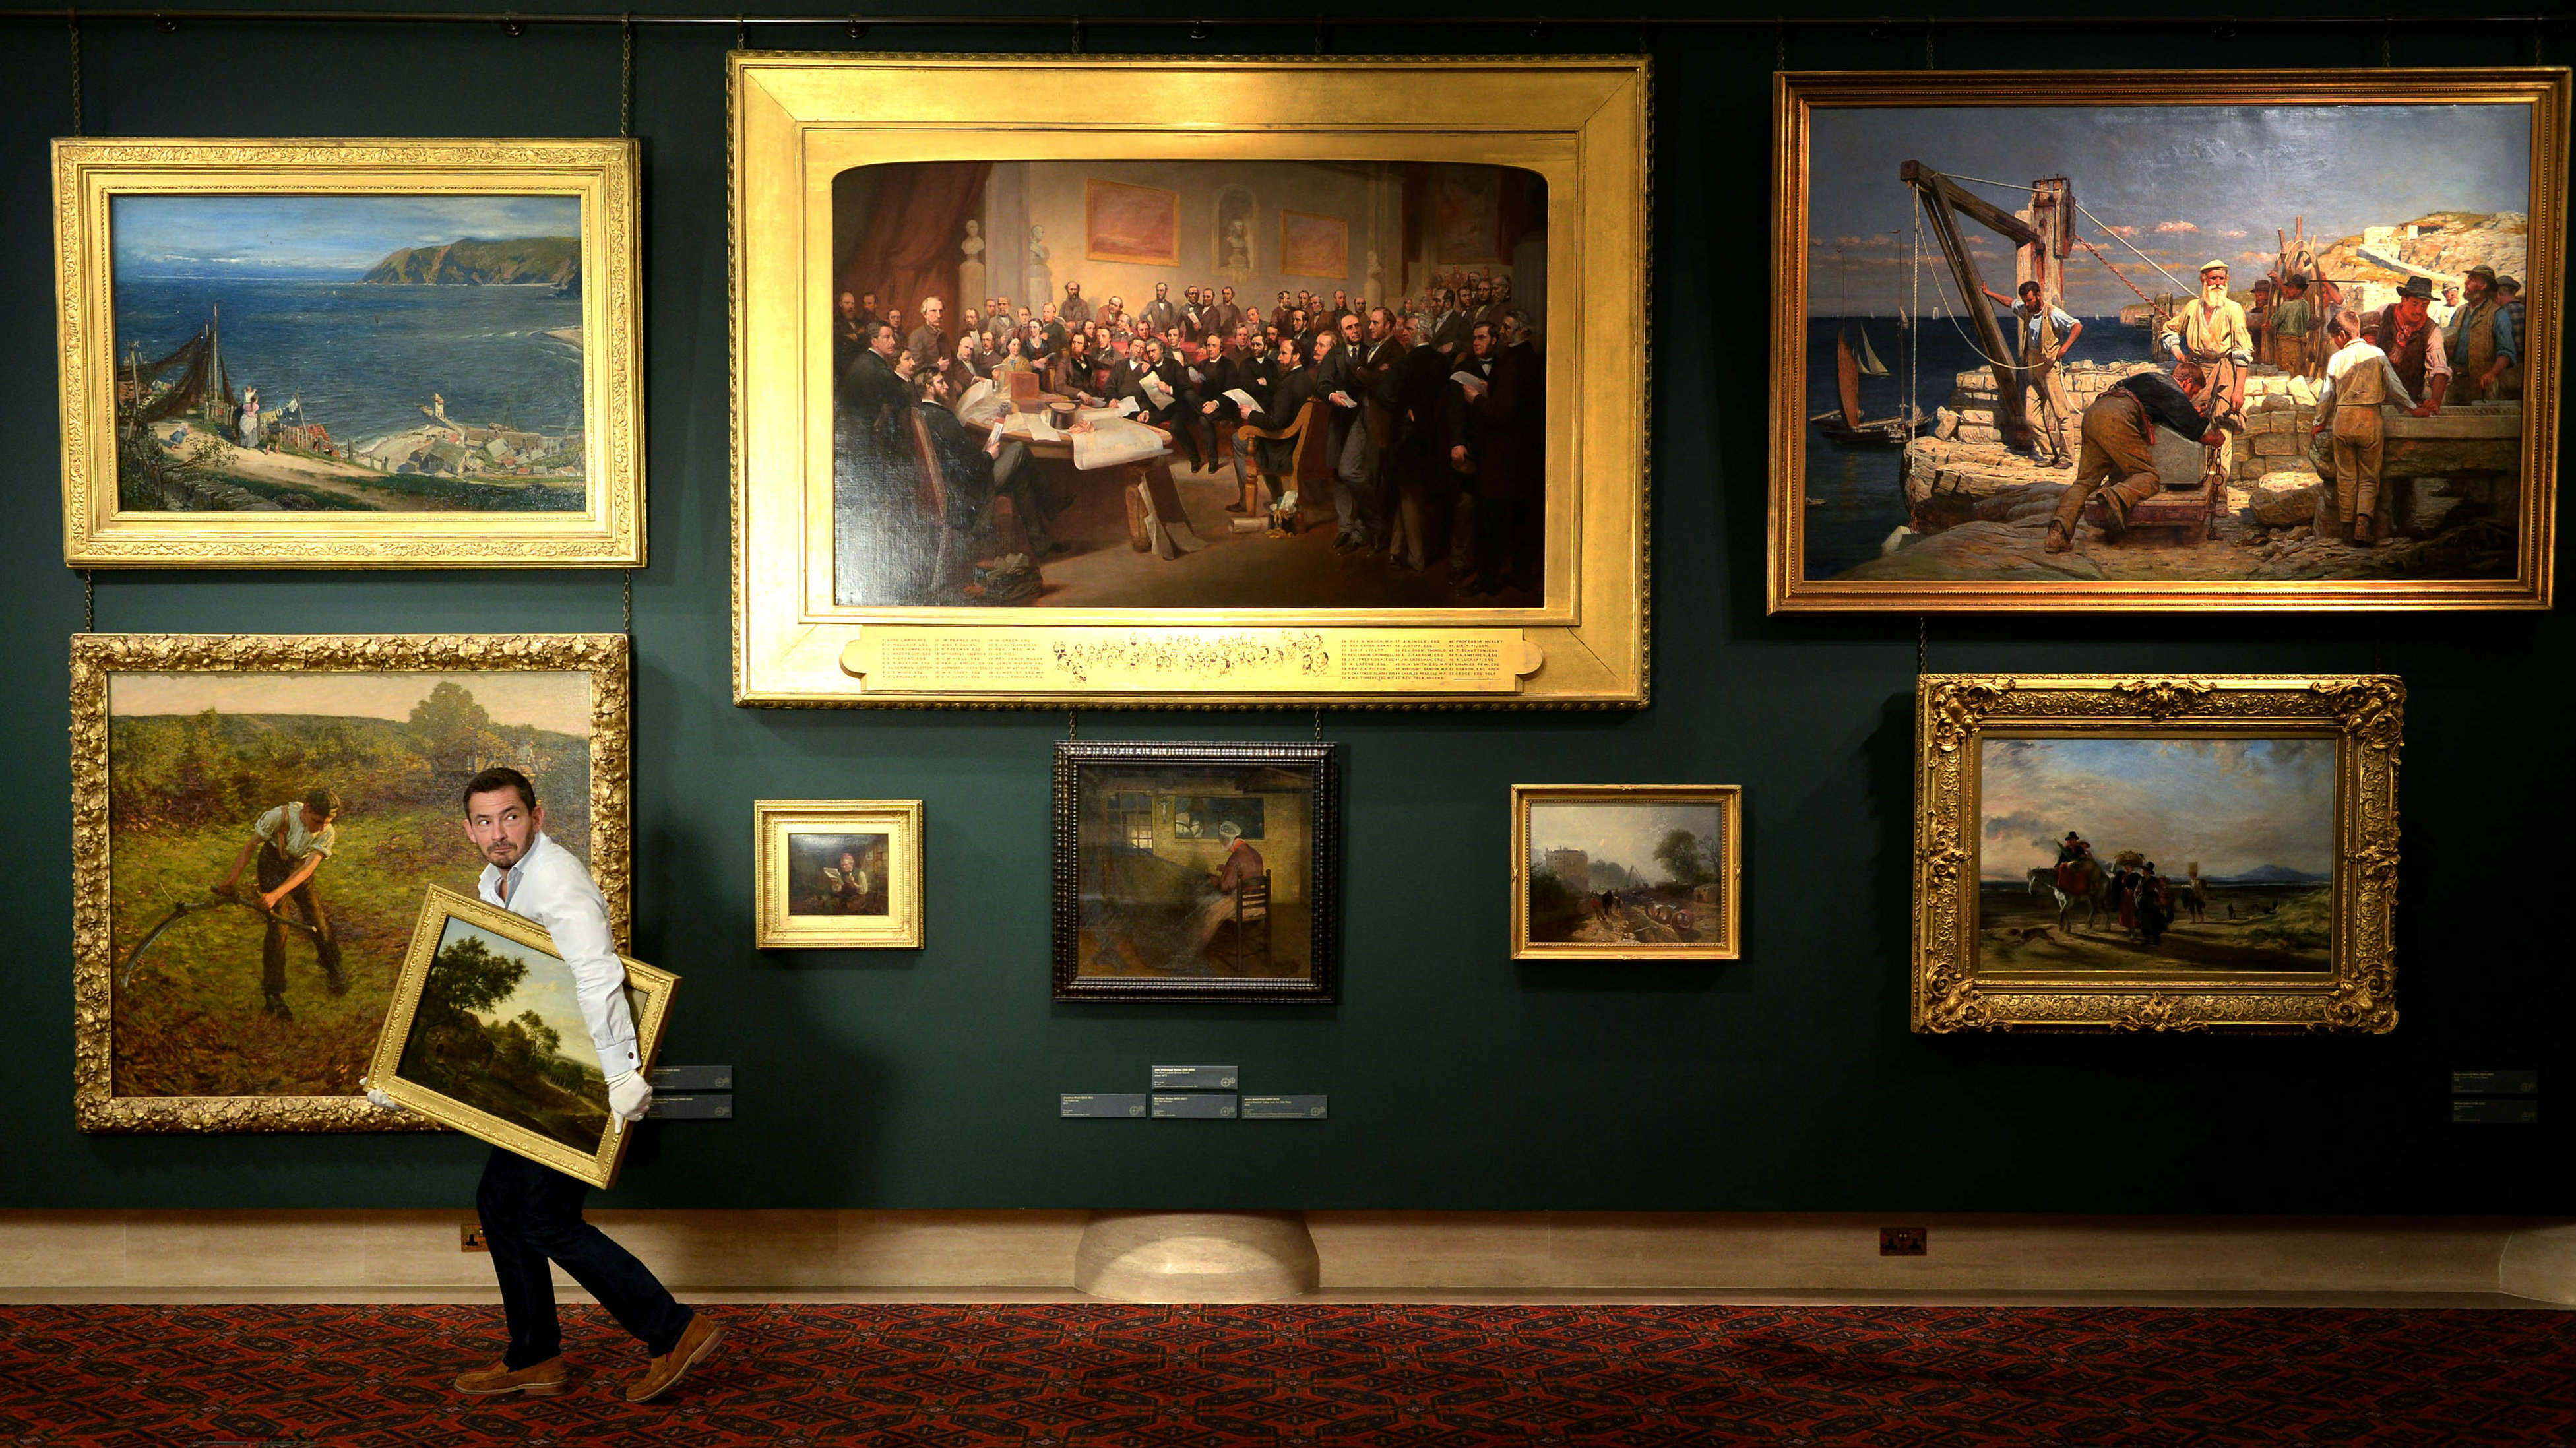 lead_Sky Arts - Fake 07a - Giles Coren at Guildhall Art Gallery © PA - Doug Peters